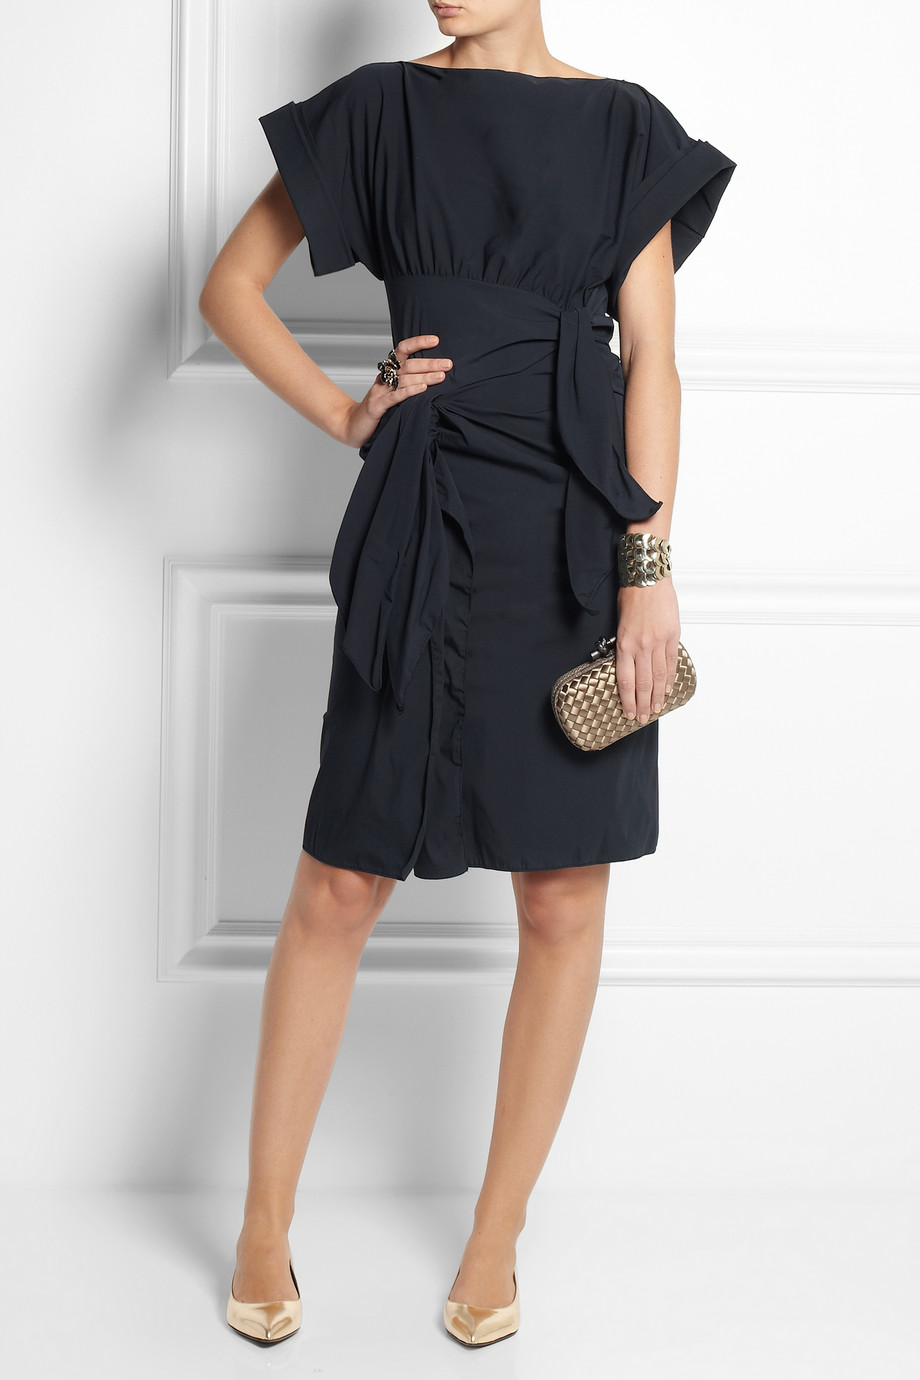 BOTTEGA VENETA Bow Embellished Stretch Cotton Blend Dress buy HERE